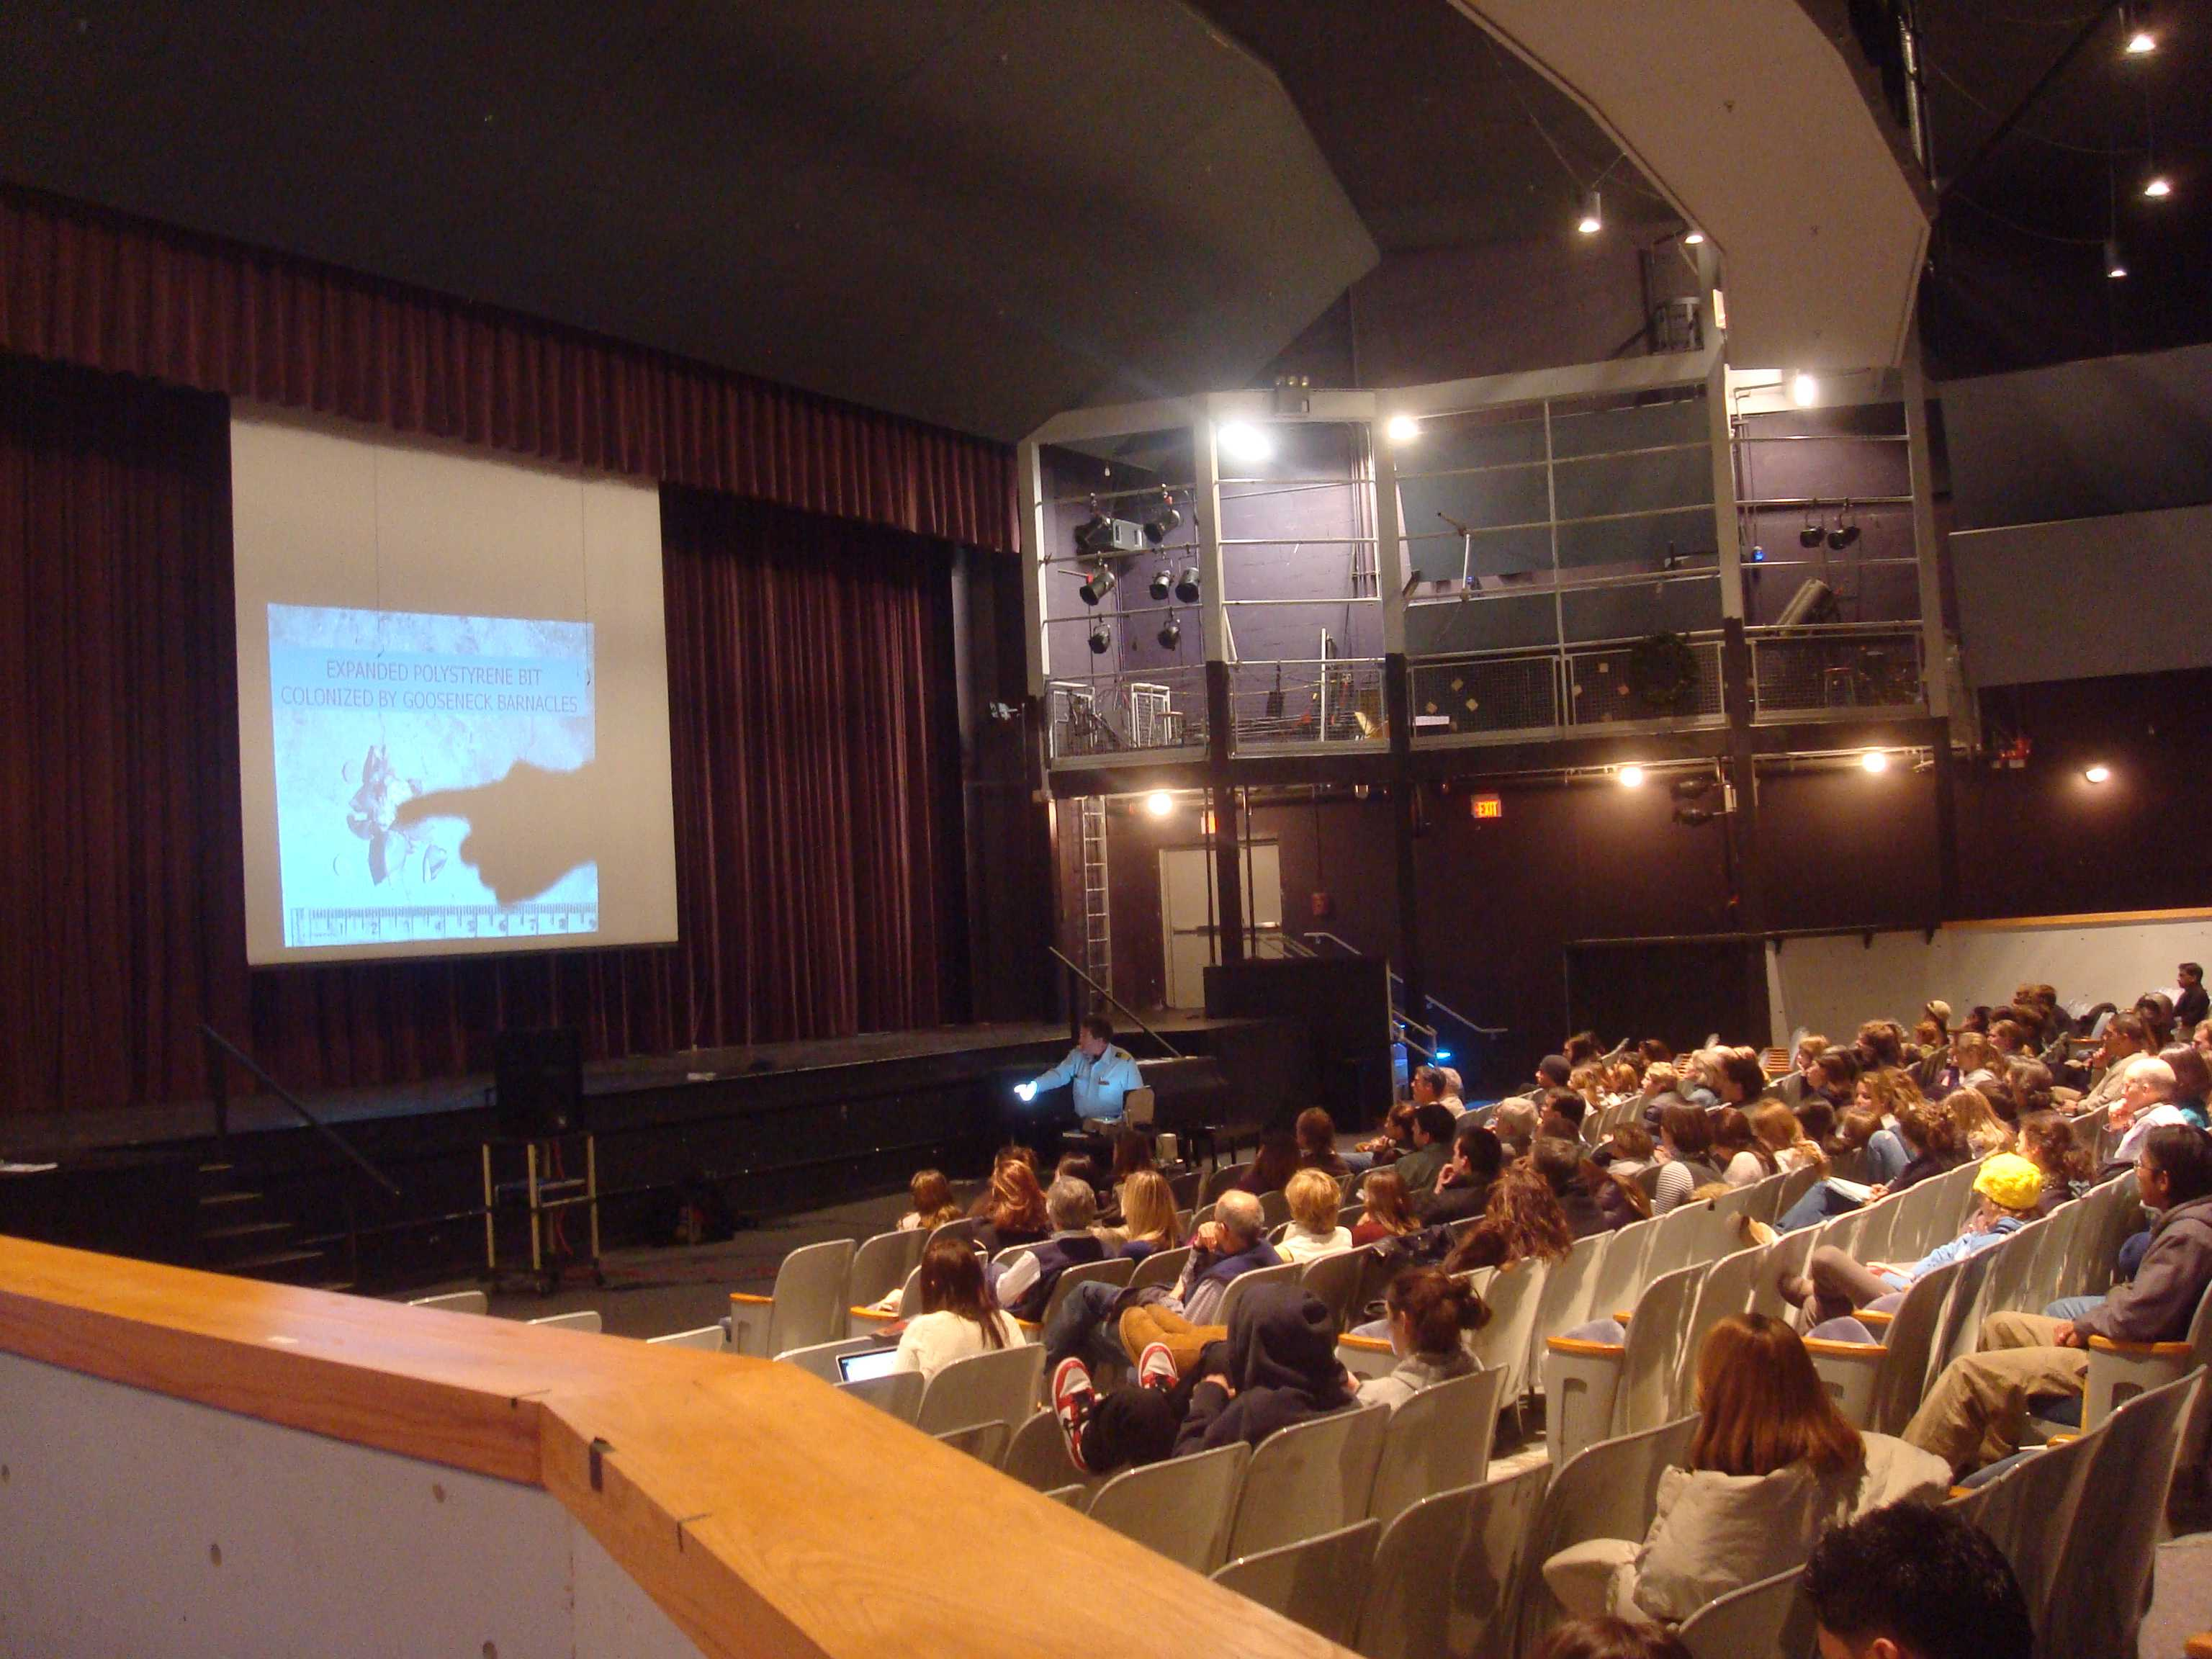 On Monday, Jan. 11, Captain Moore spoke at Staples High School about the Eastern Garbage Patch, a current environmental problem.